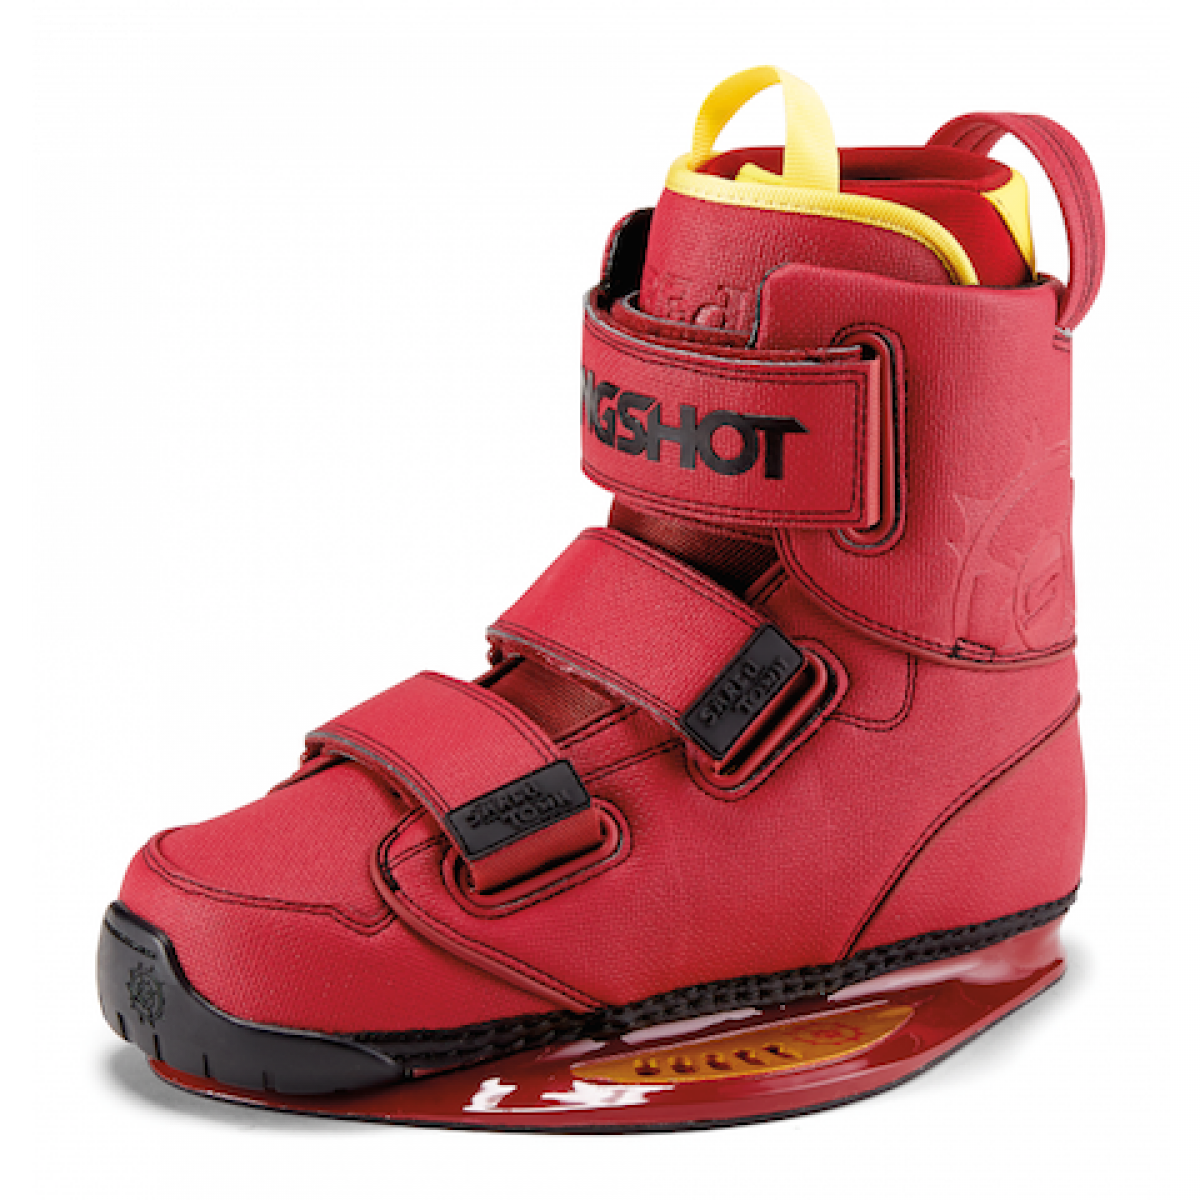 Slingshot shredtown boots | Wakeboarding | Wakeboarding, Boots